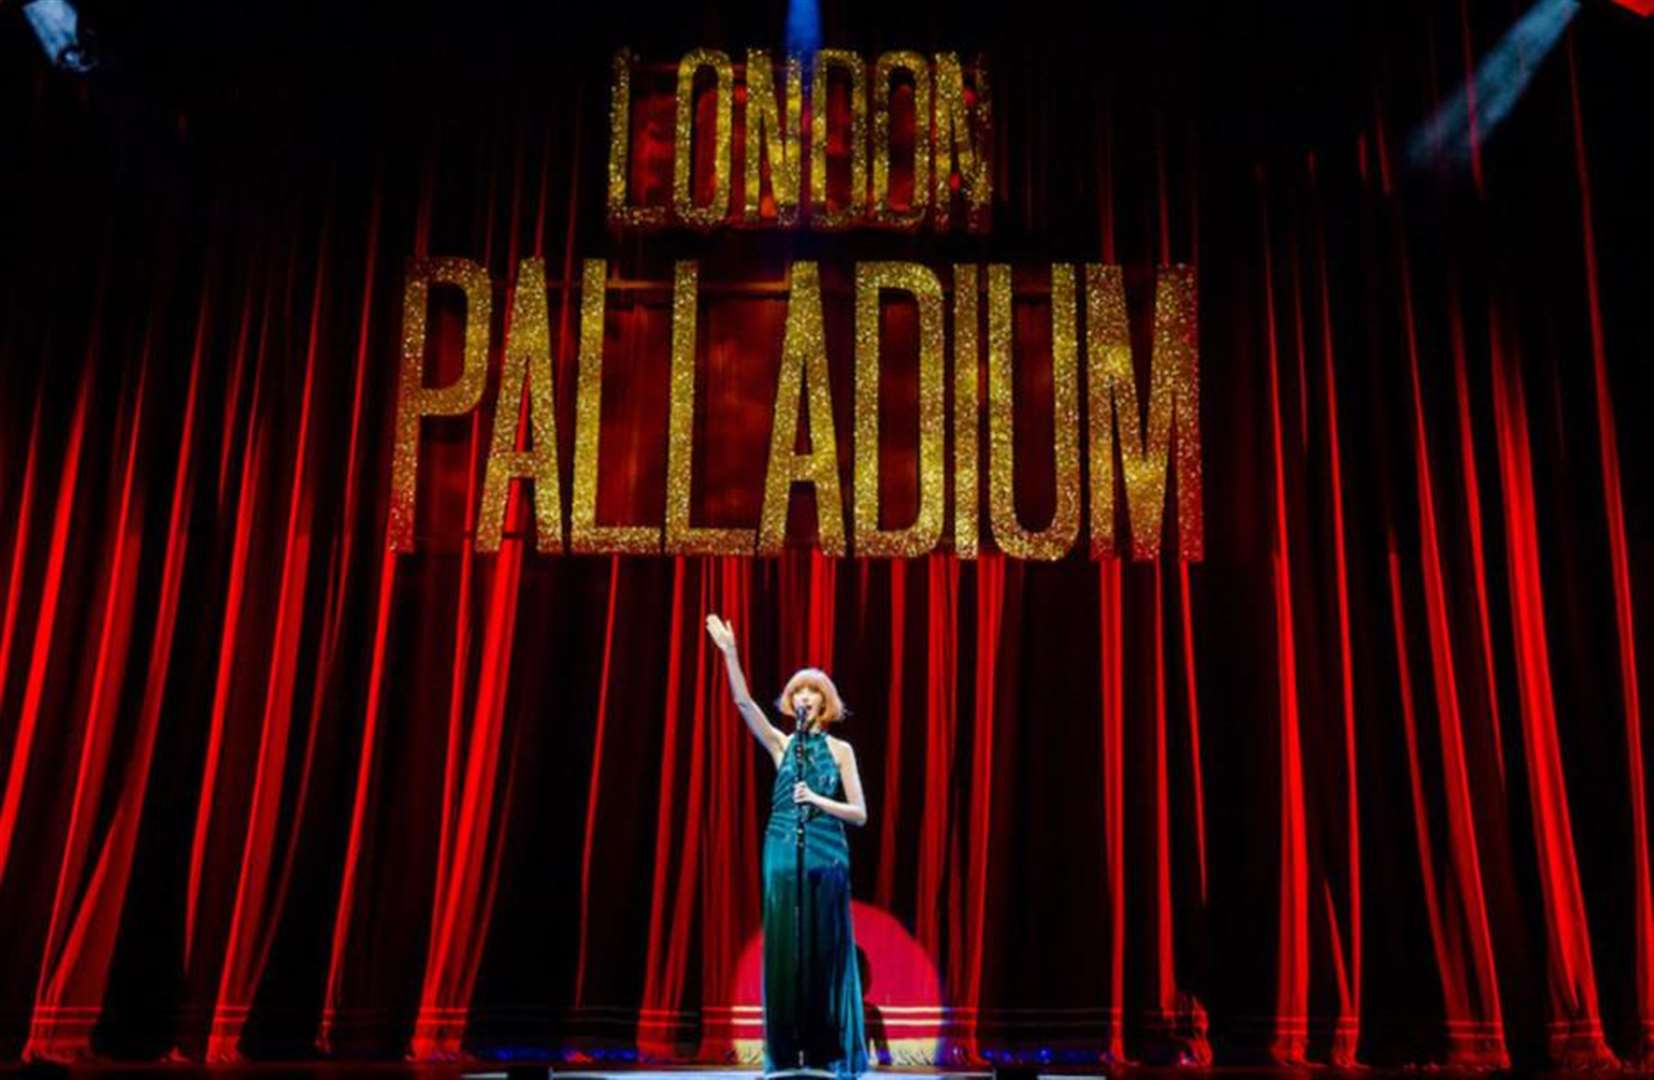 Review: Cilla The Musical, Theatre Royal Norwich